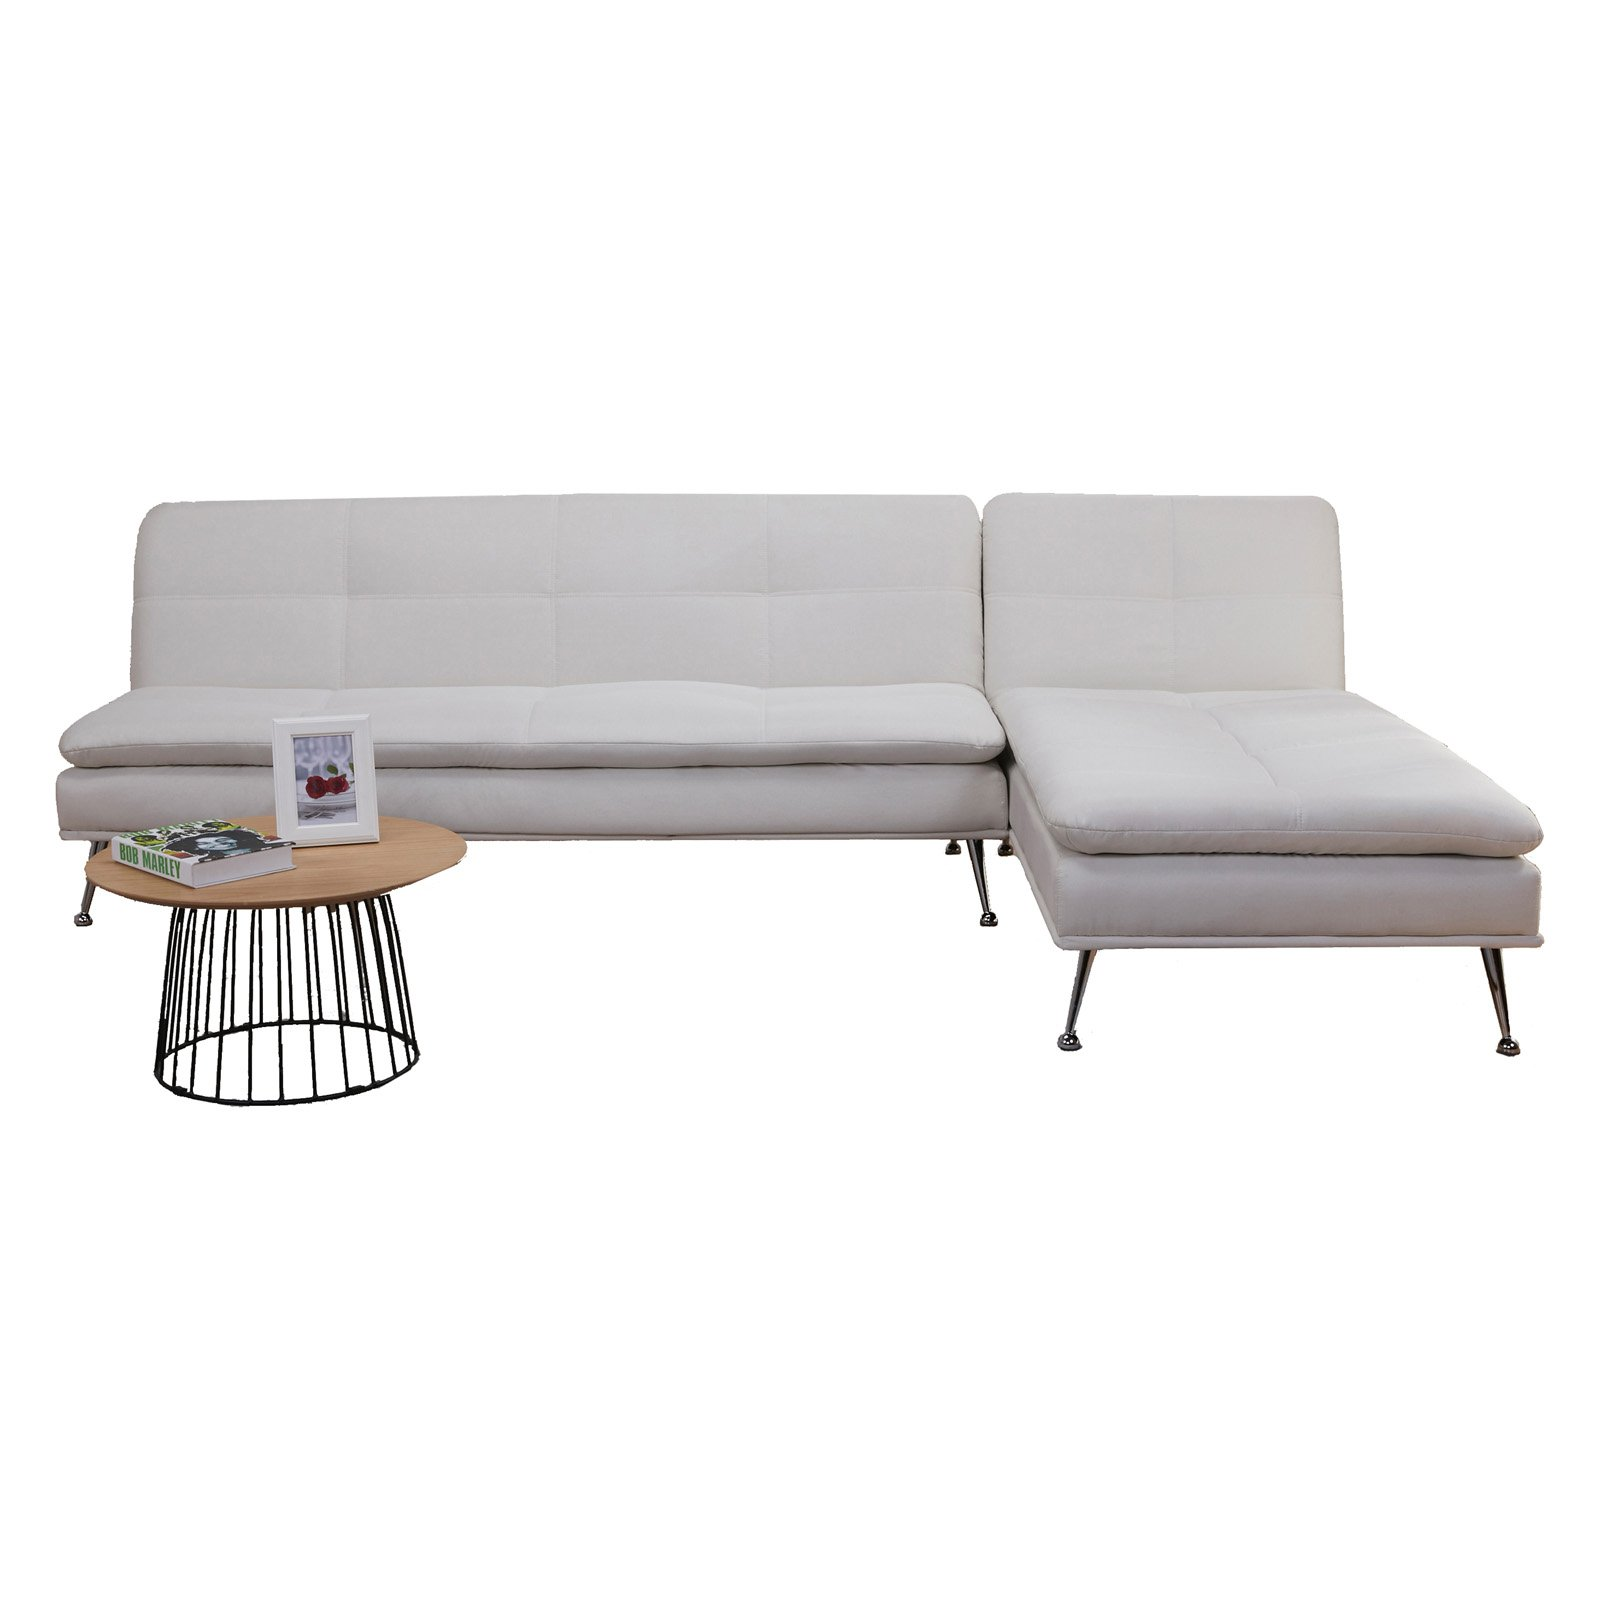 Gold Sparrow Palmdale Convertible Sectional Sofa Bed   Walmart.com